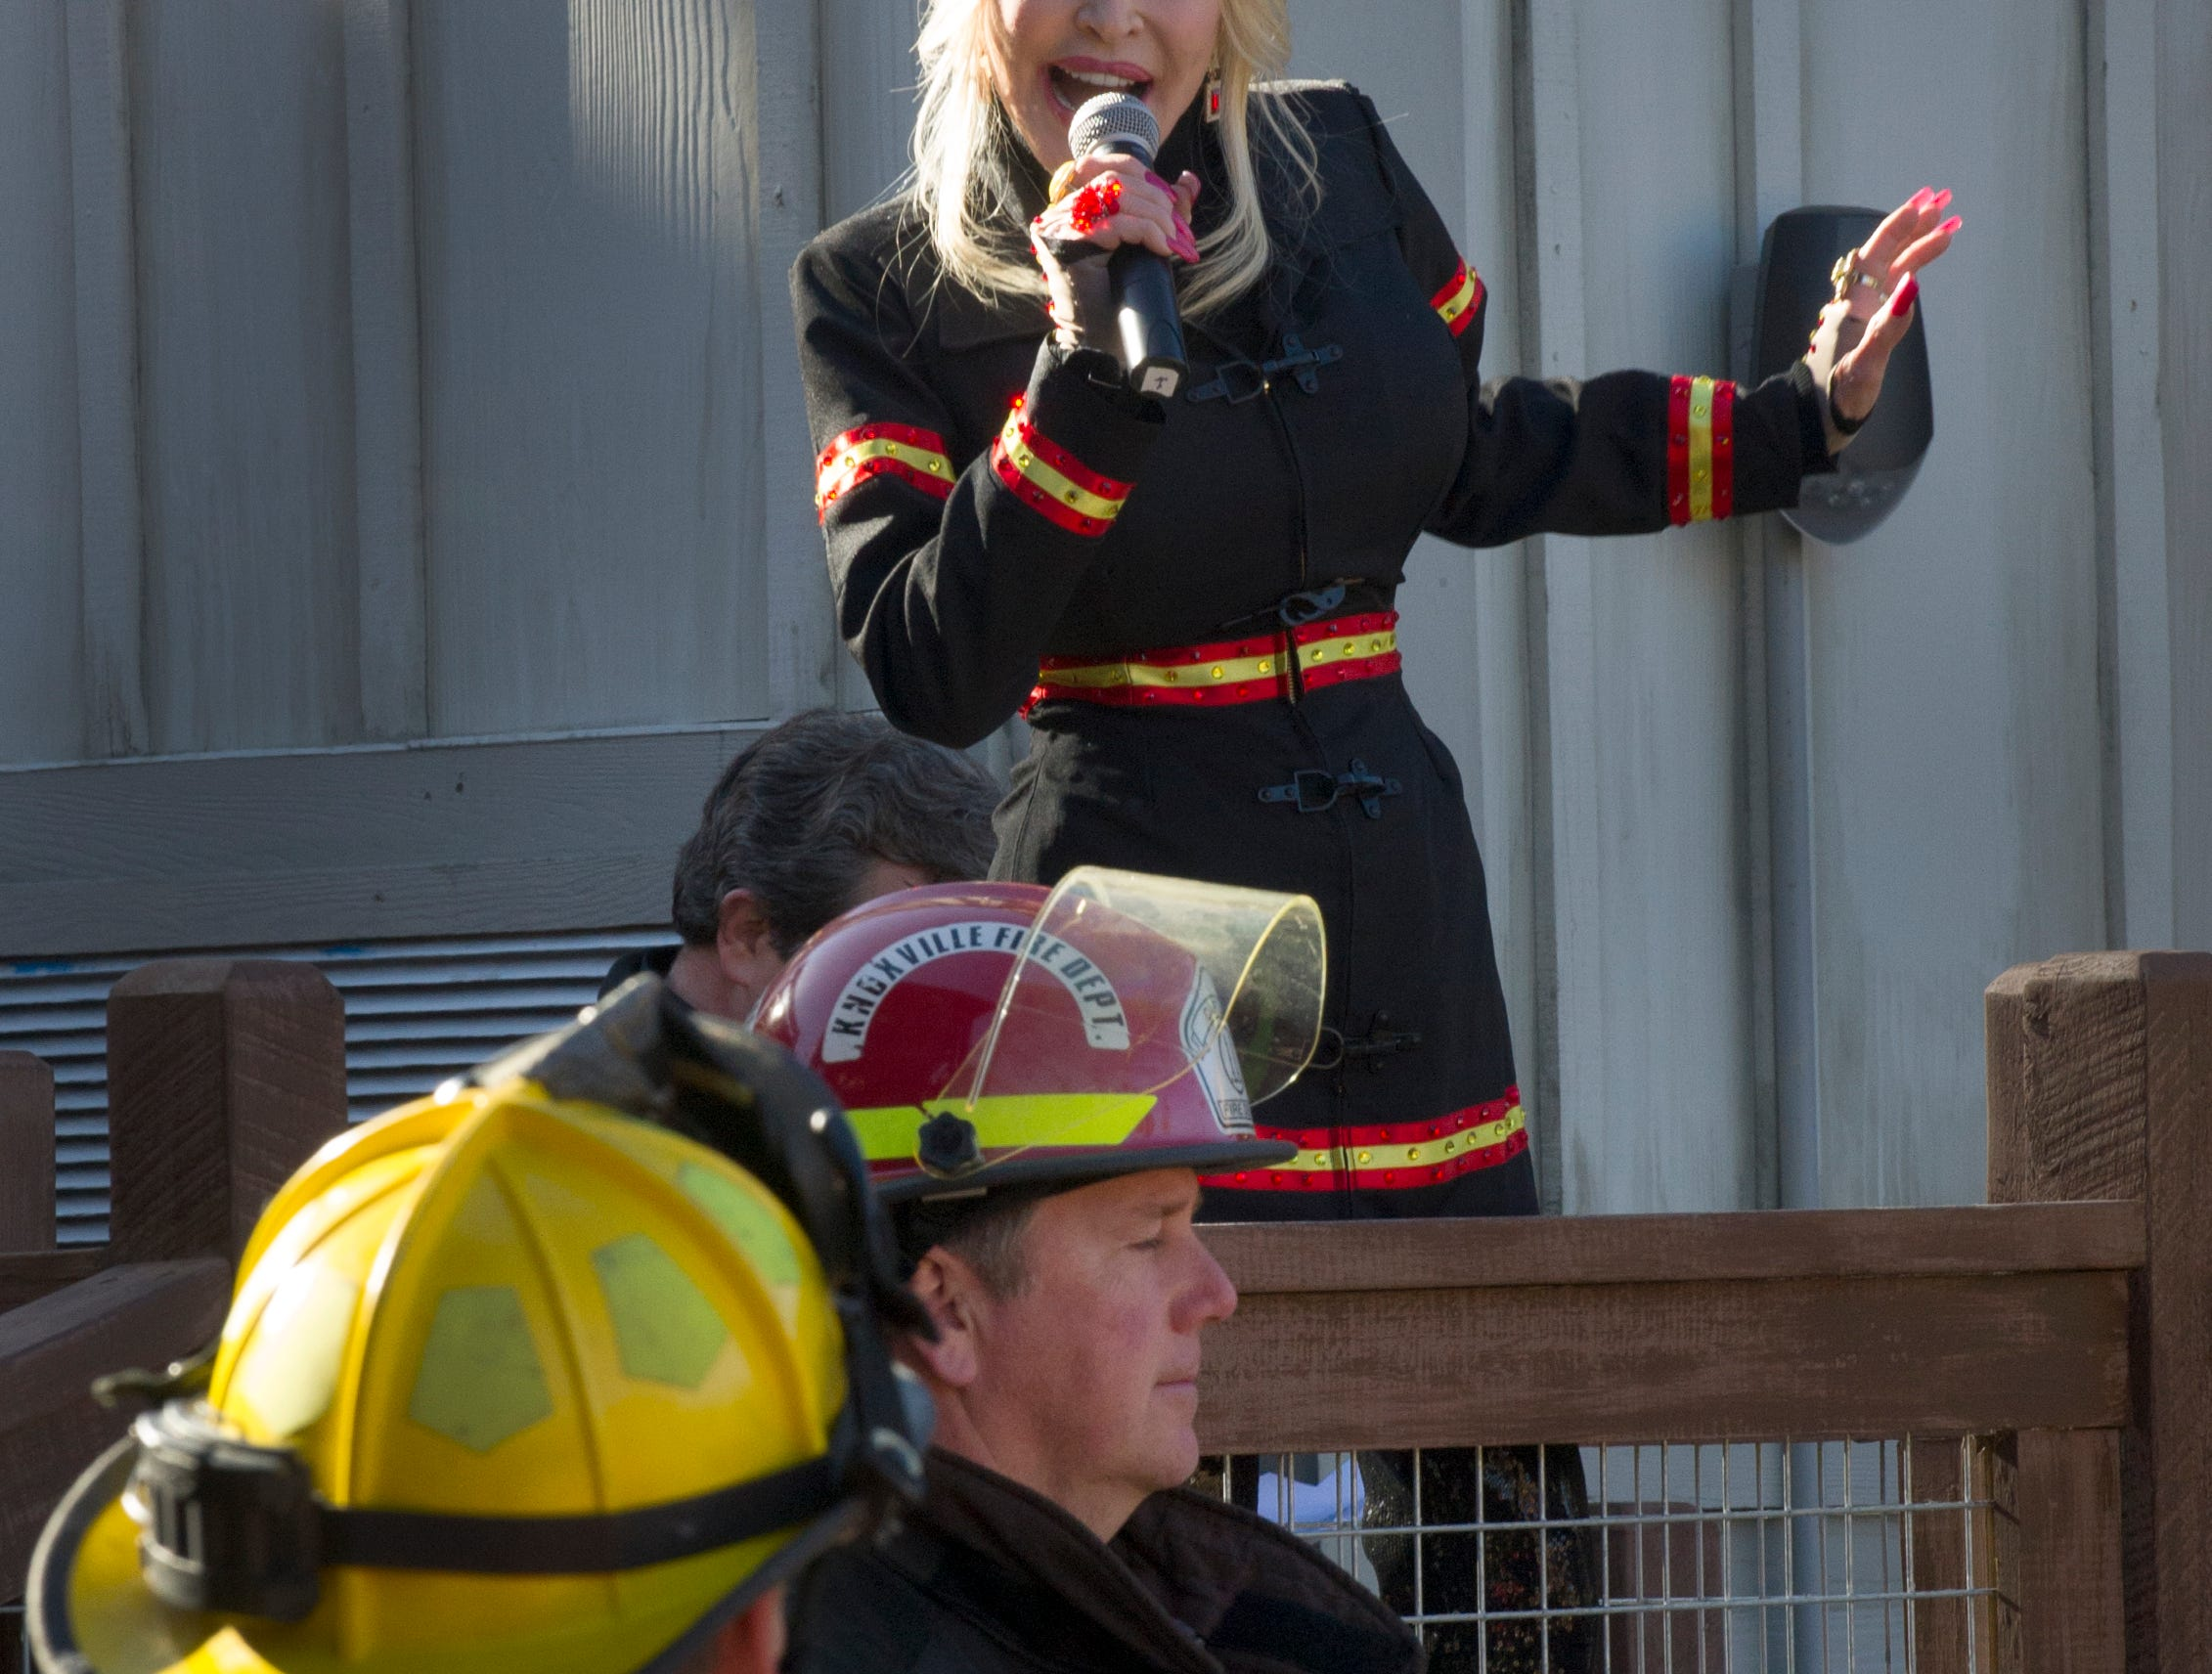 Dolly Parton opened the season at Dollywood Friday, Mar. 21, 2014 by starting their new Firechaser ride.